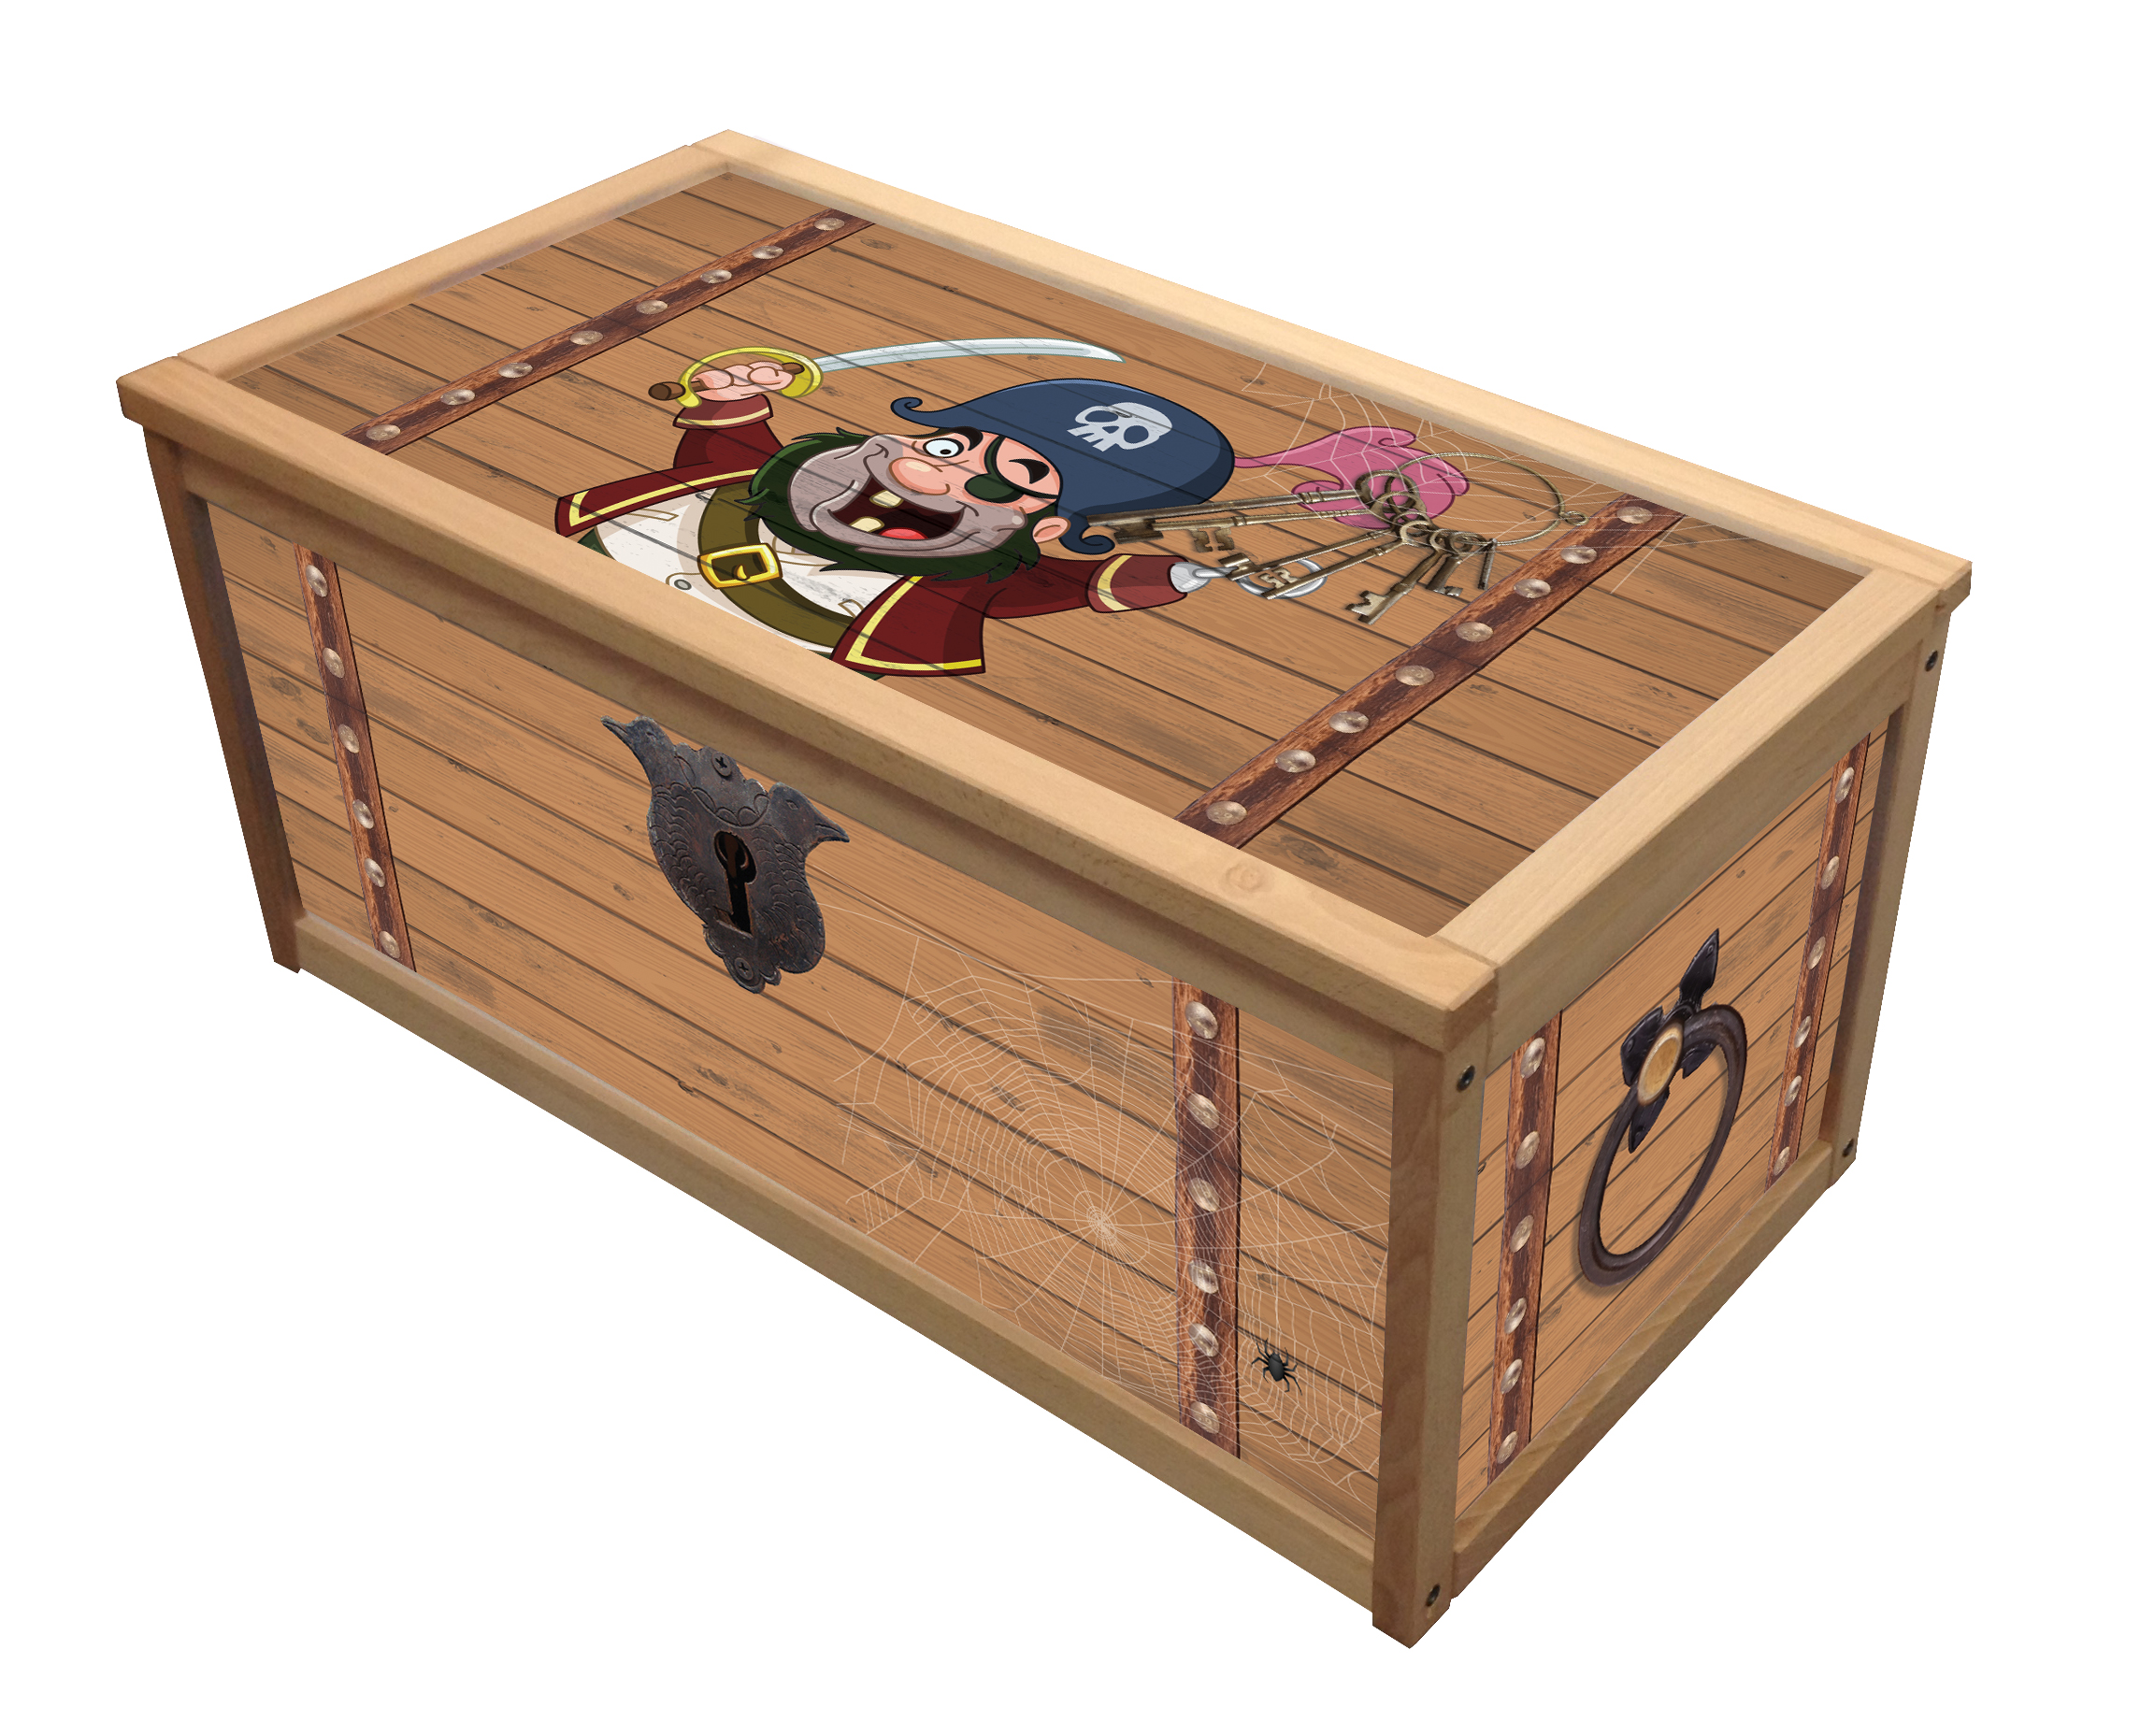 Wooden Toy Chests